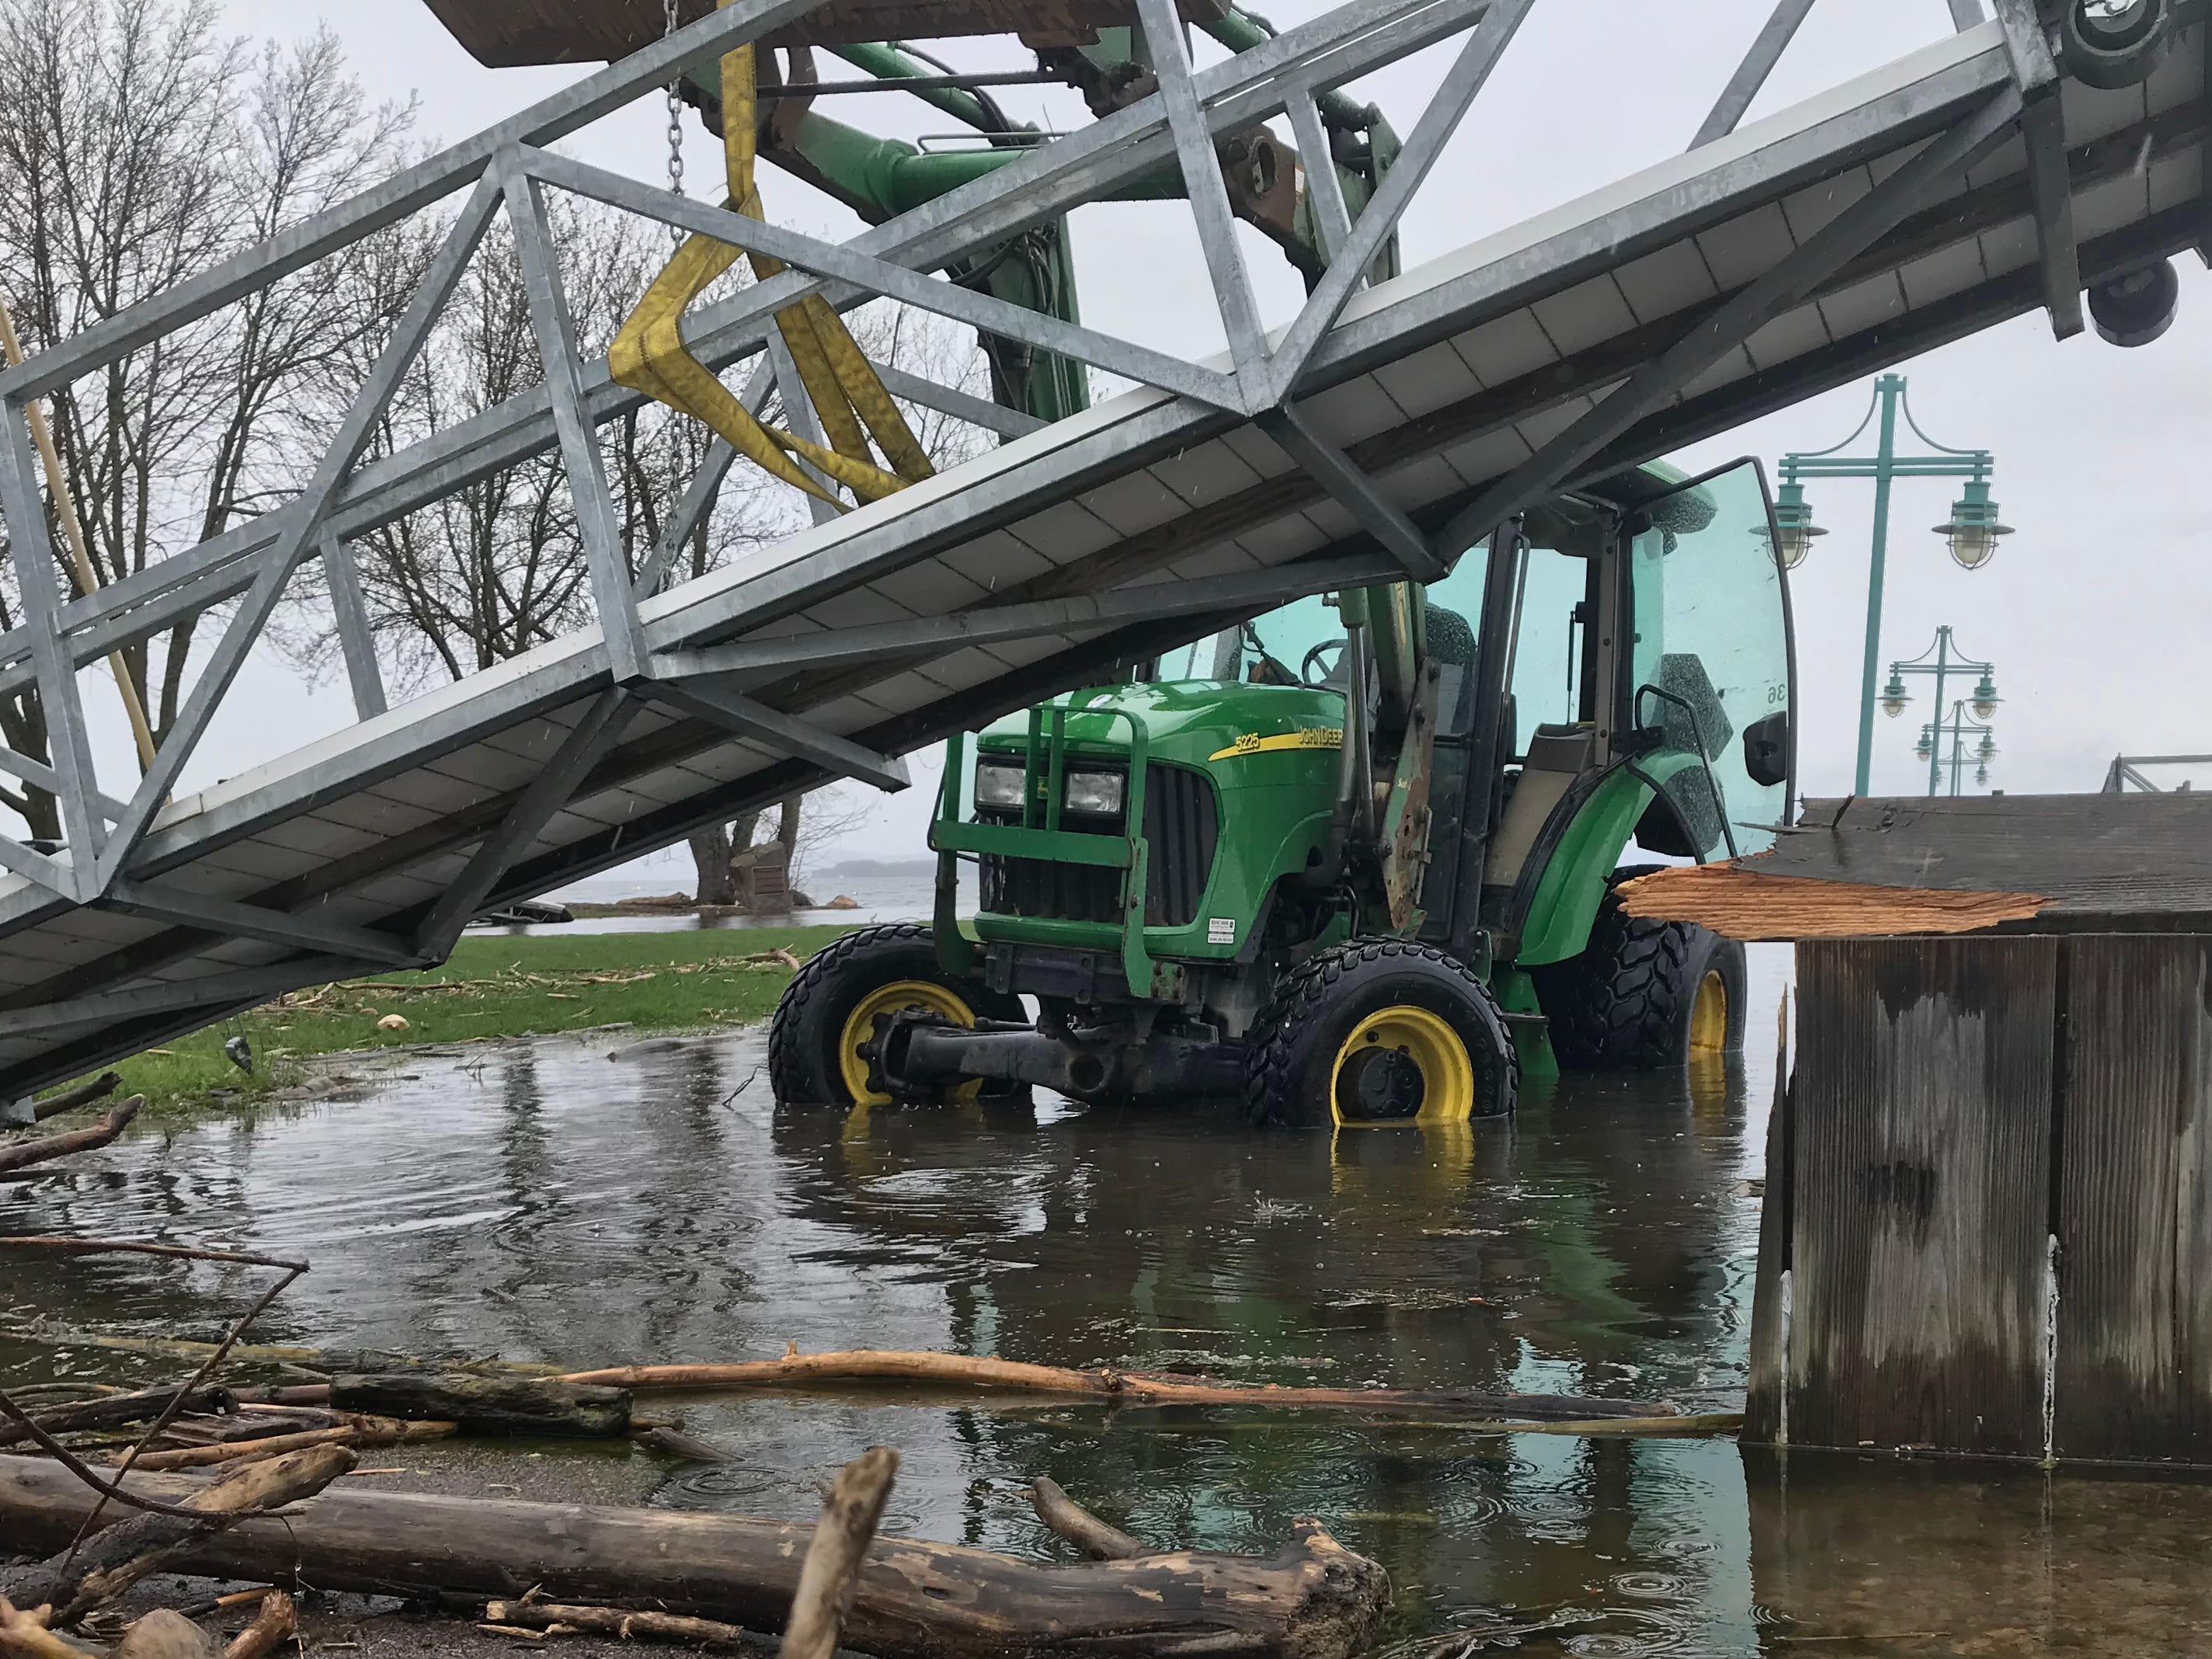 Kurt Hawkins, an event and marina specialist with Burlington Department of Parks, Recreation and Waterfront, lifts a gangway into position at Perkins Pier on Tuesday, May 14, 2019. Lake Champlain is in its third week at flood stage.